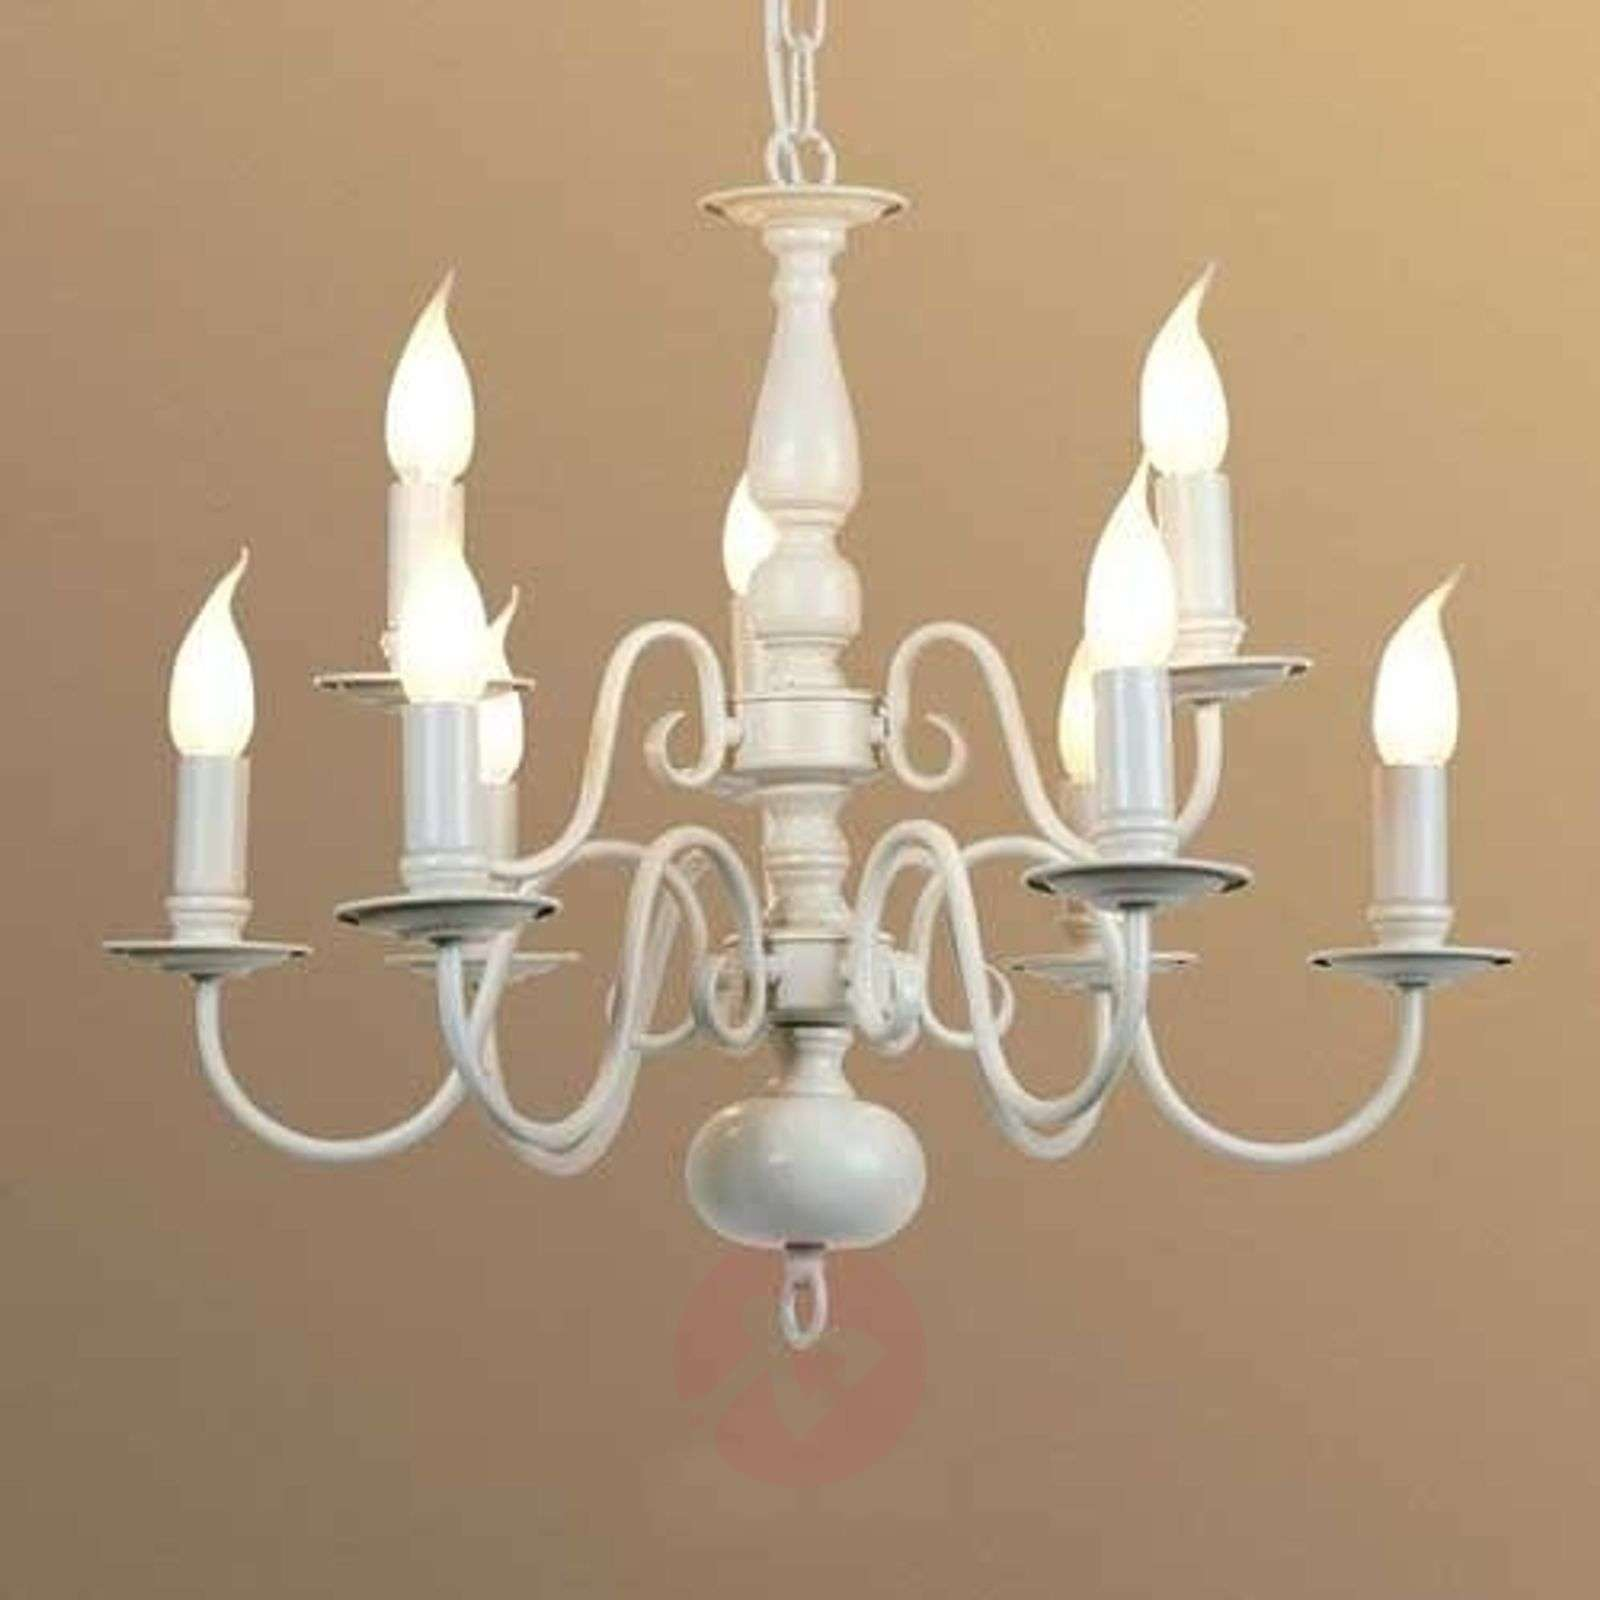 9-bulb MAYRA chandelier in a country house style-1032221-01